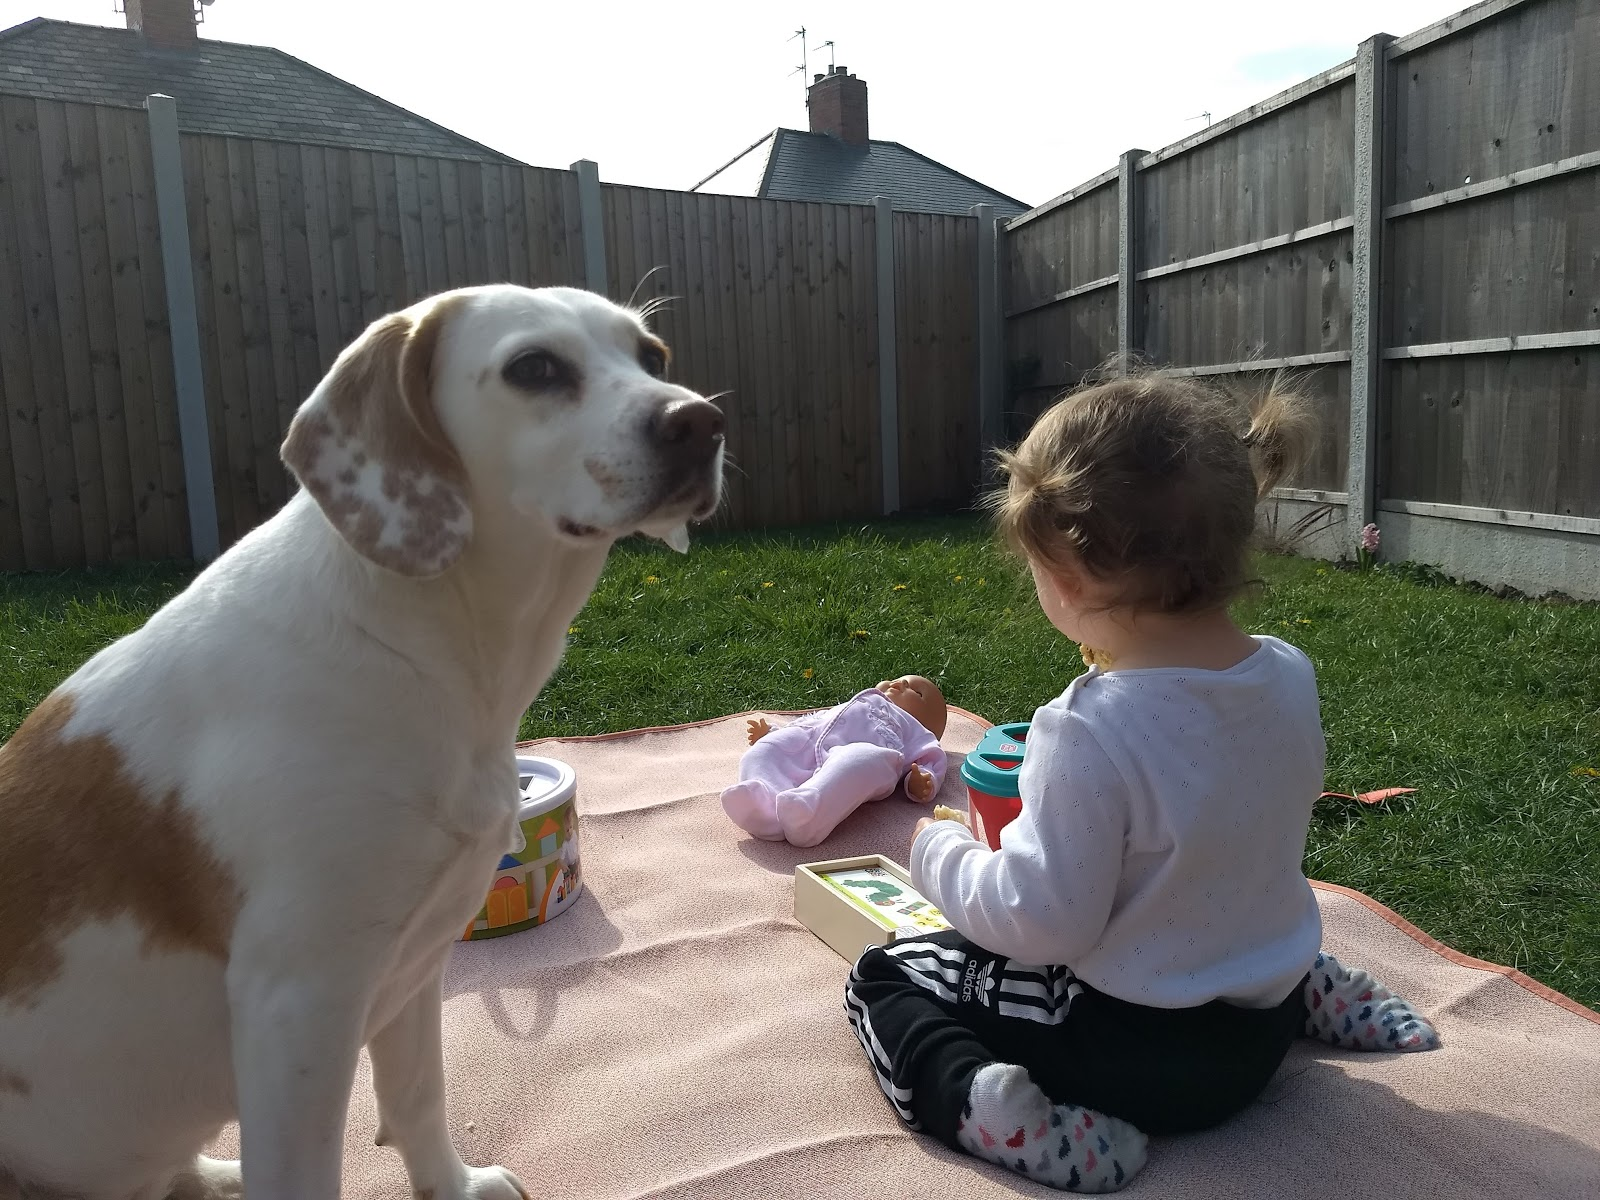 Toddler and puppy sitting on picnic blanket outside.